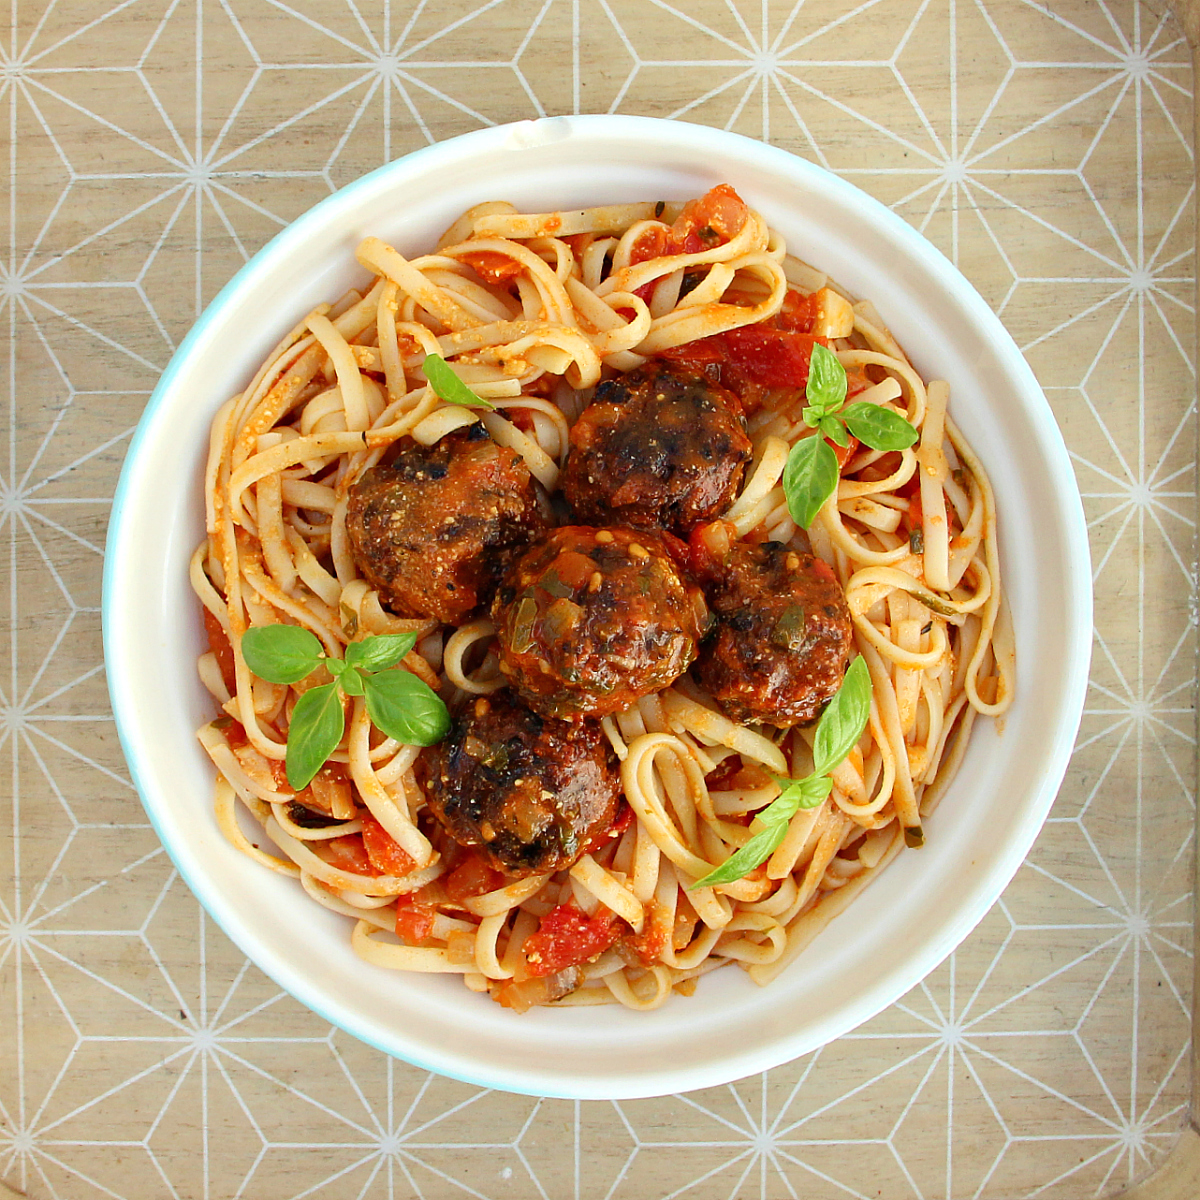 Vegan Spaghetti Meatless Meatballs - The Vegan Eskimo